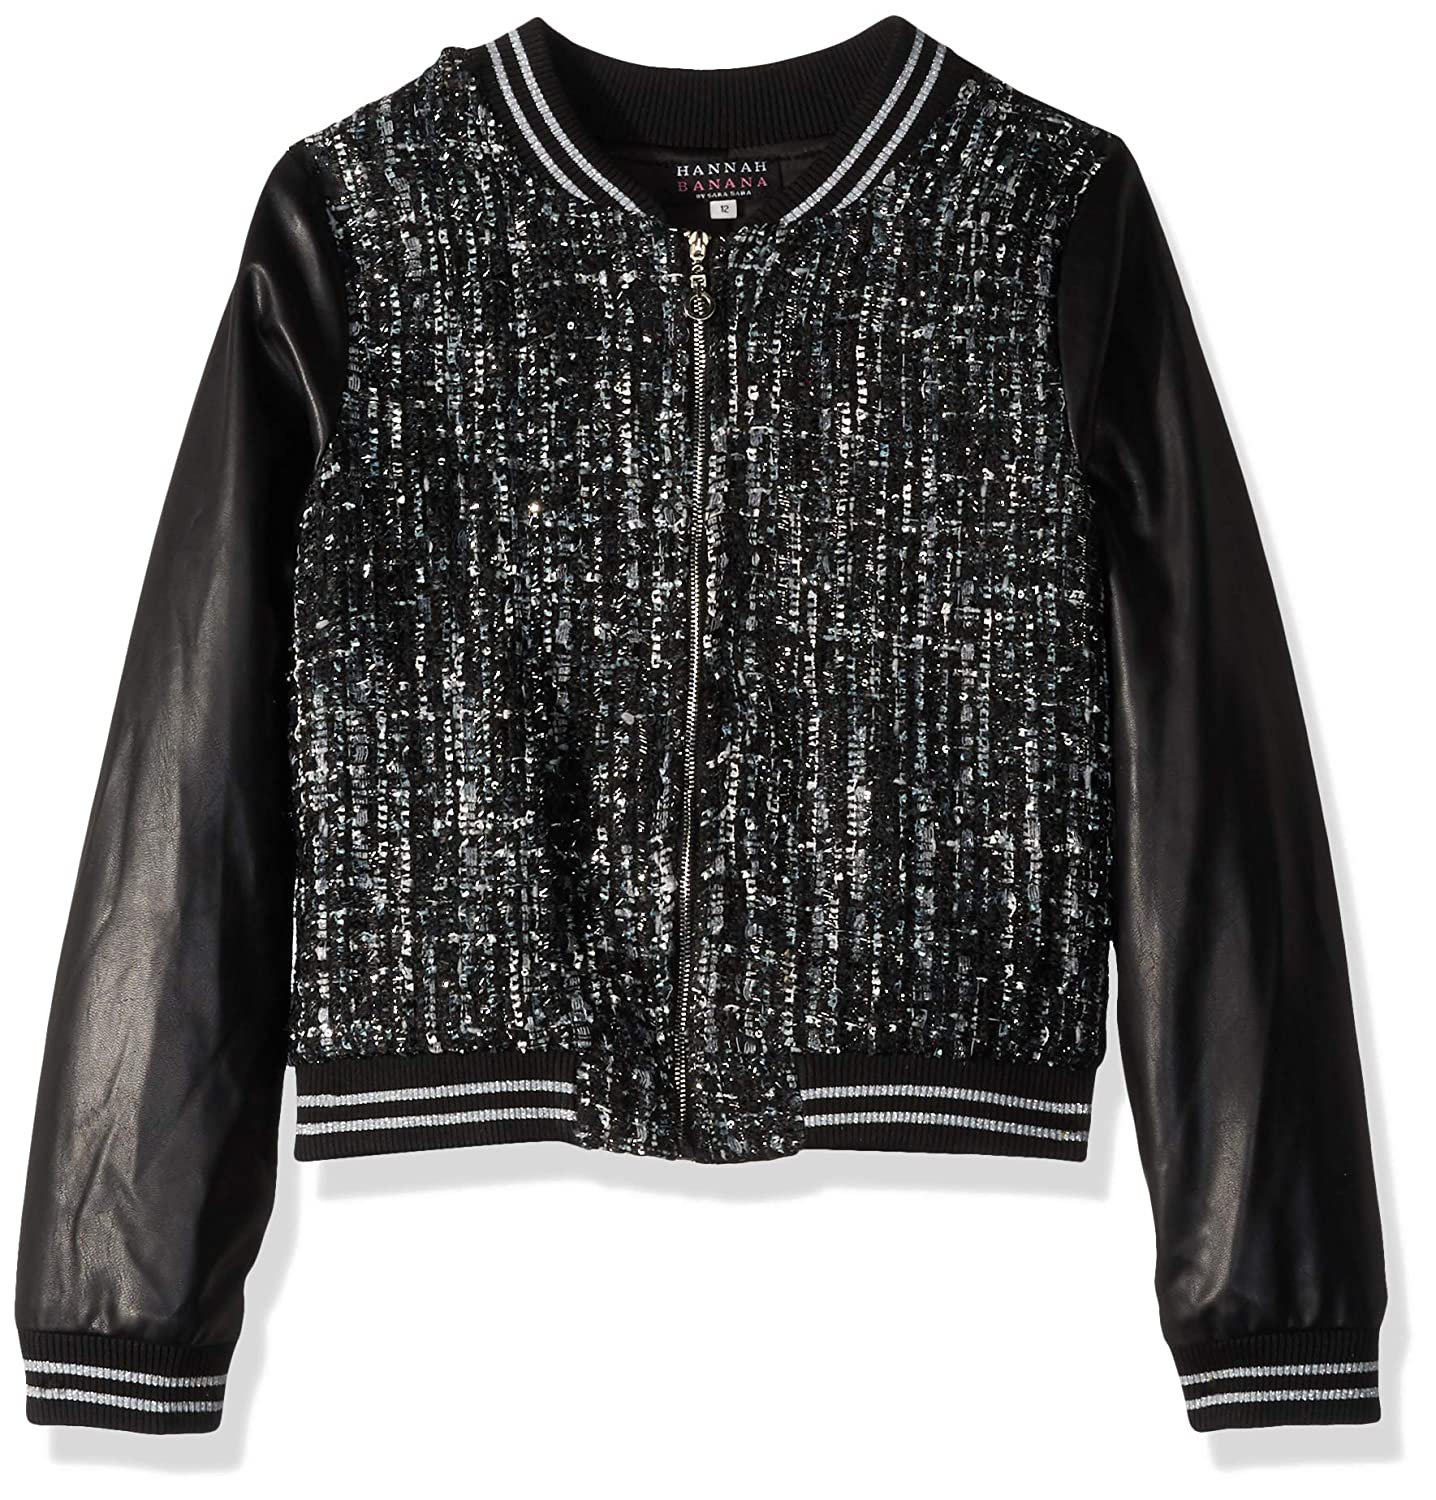 Black//White 12 Truly Me Girls Big Outerwear Bomber Jackets